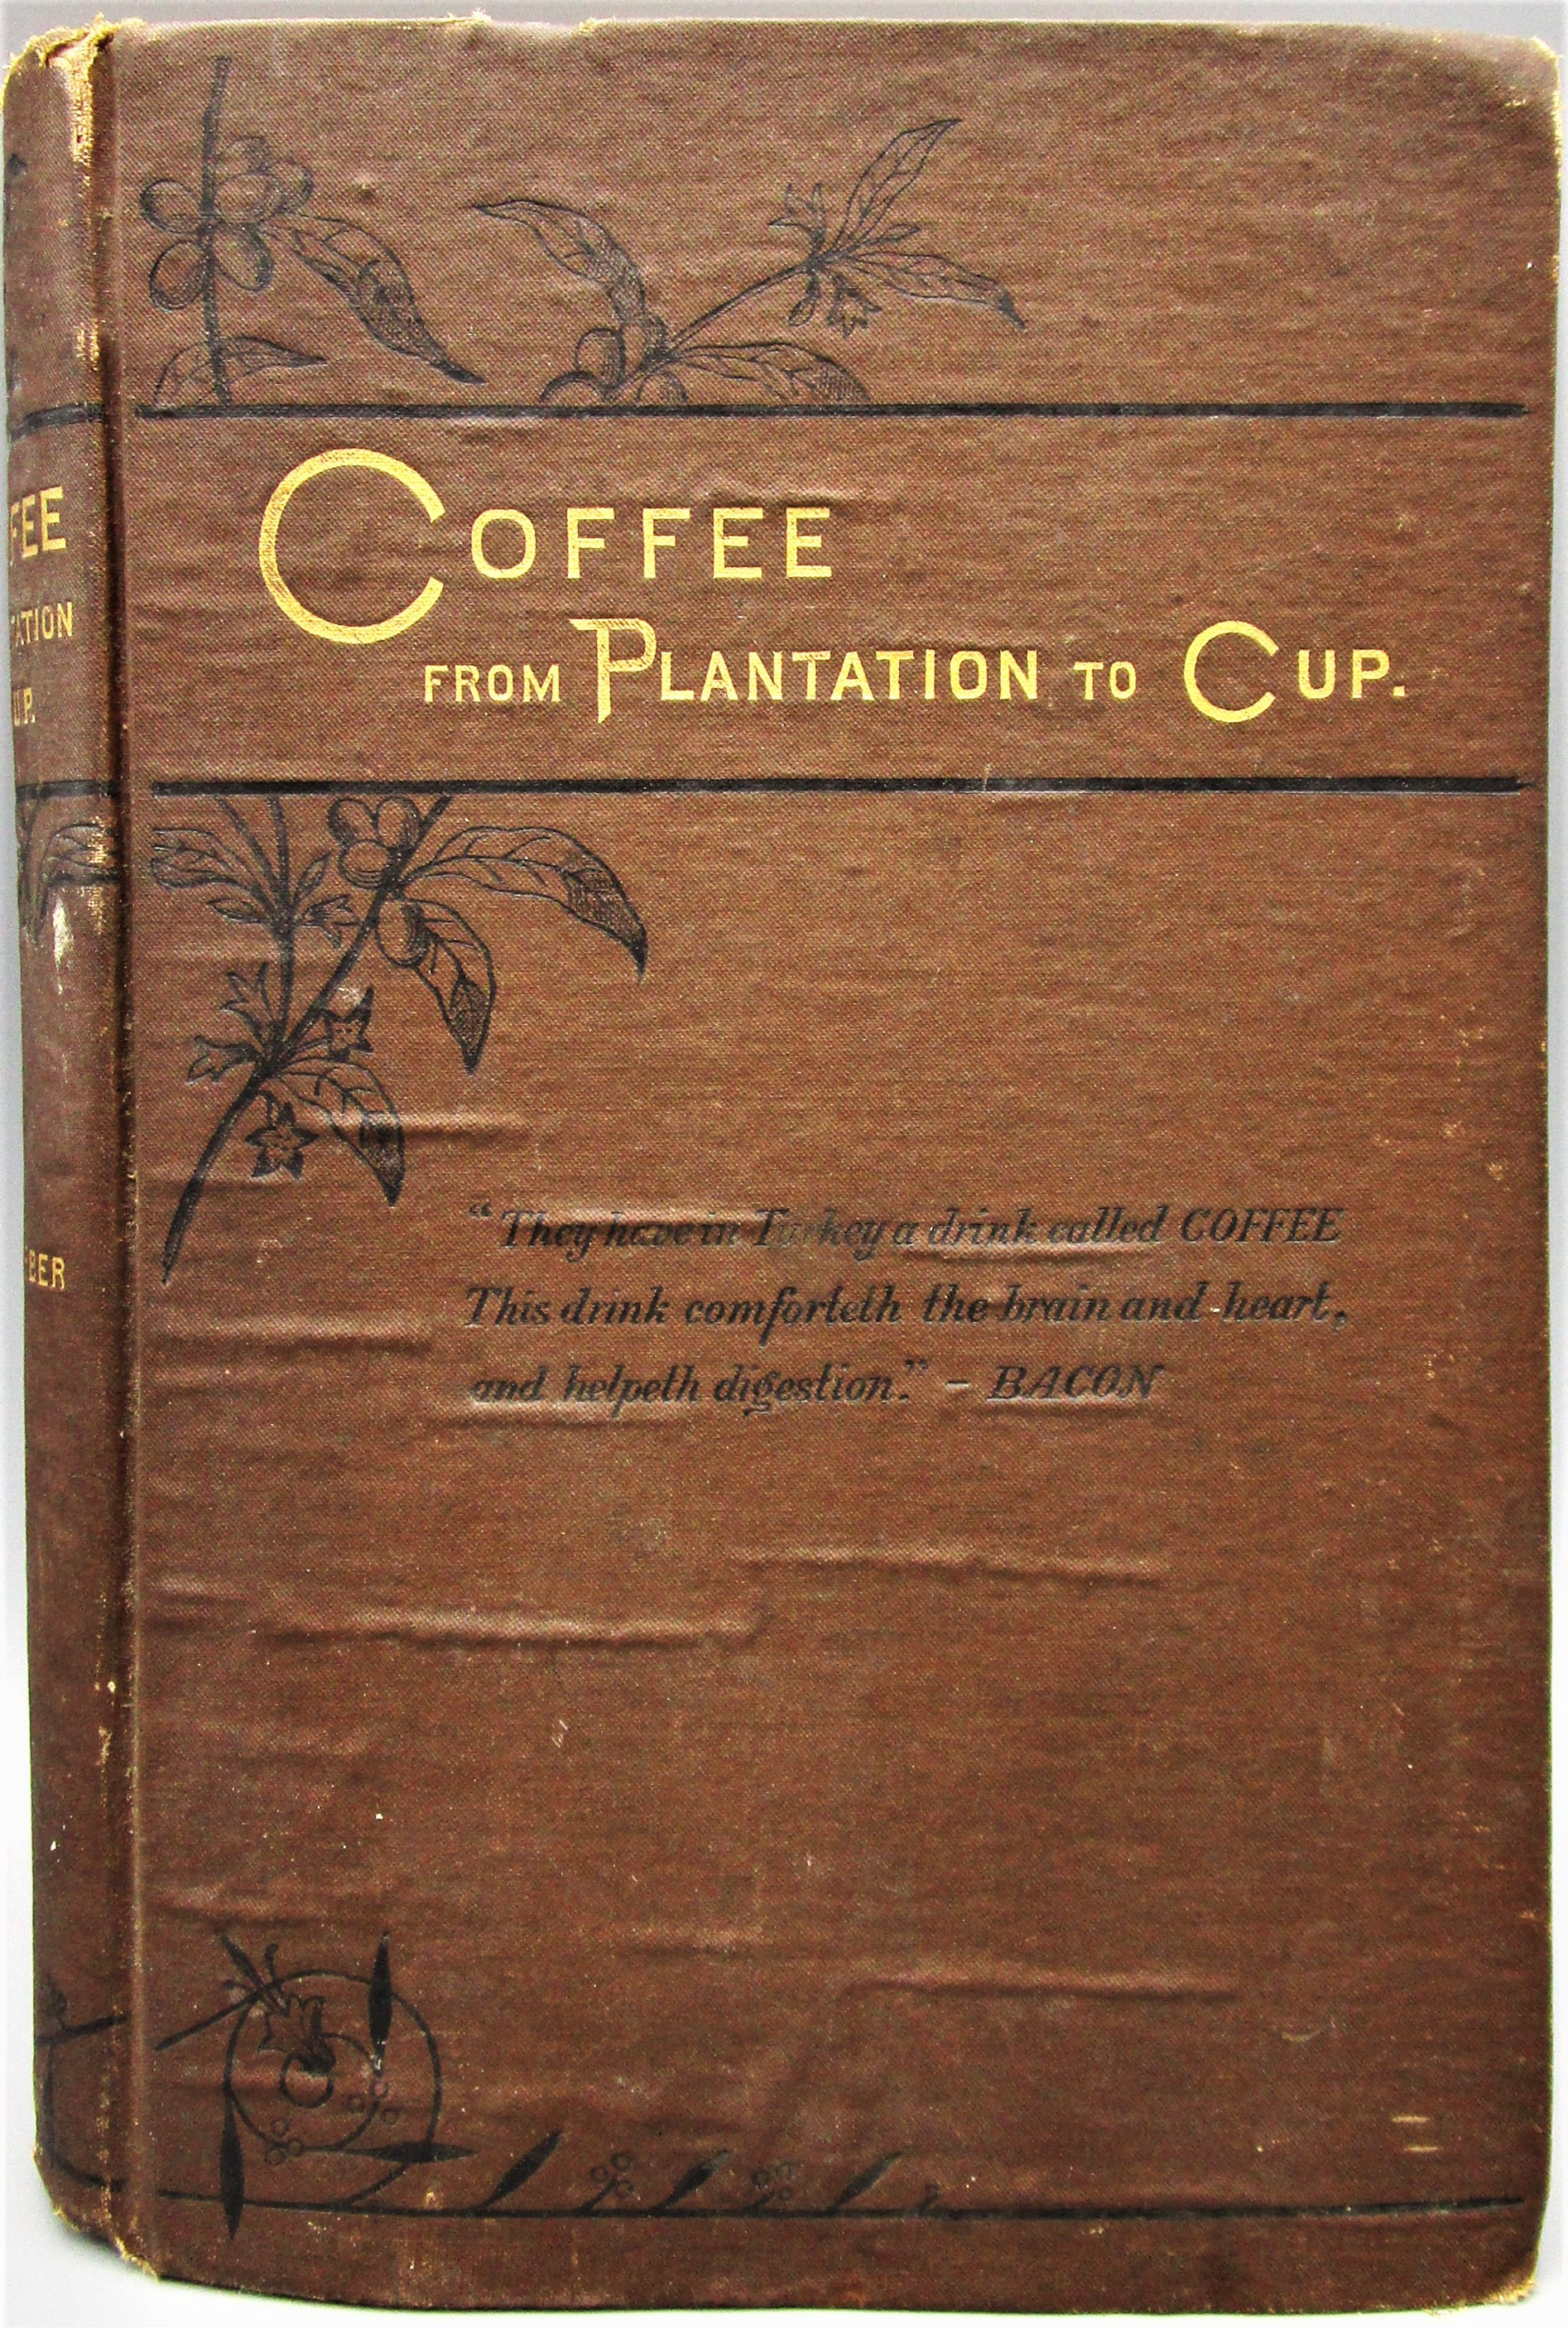 COFFEE: FROM PLANTATION TO CUP, by Francis B. Thurber - 1883